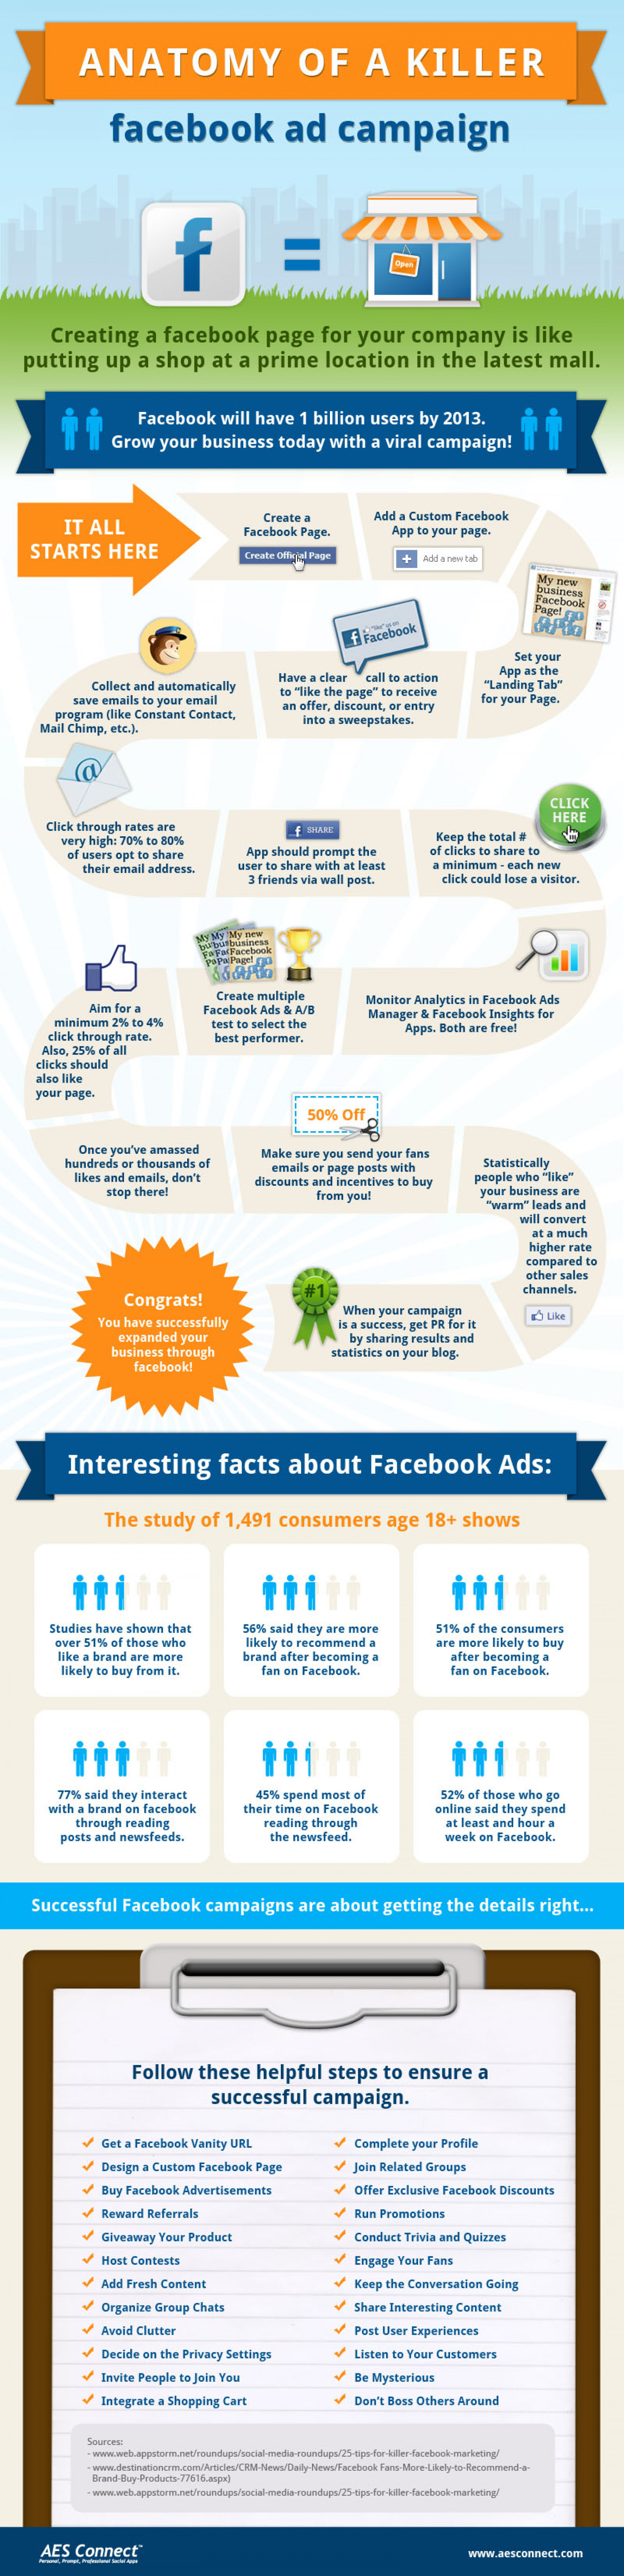 """Anatomy of a Killer Facebook Ad Campaign Infographic"